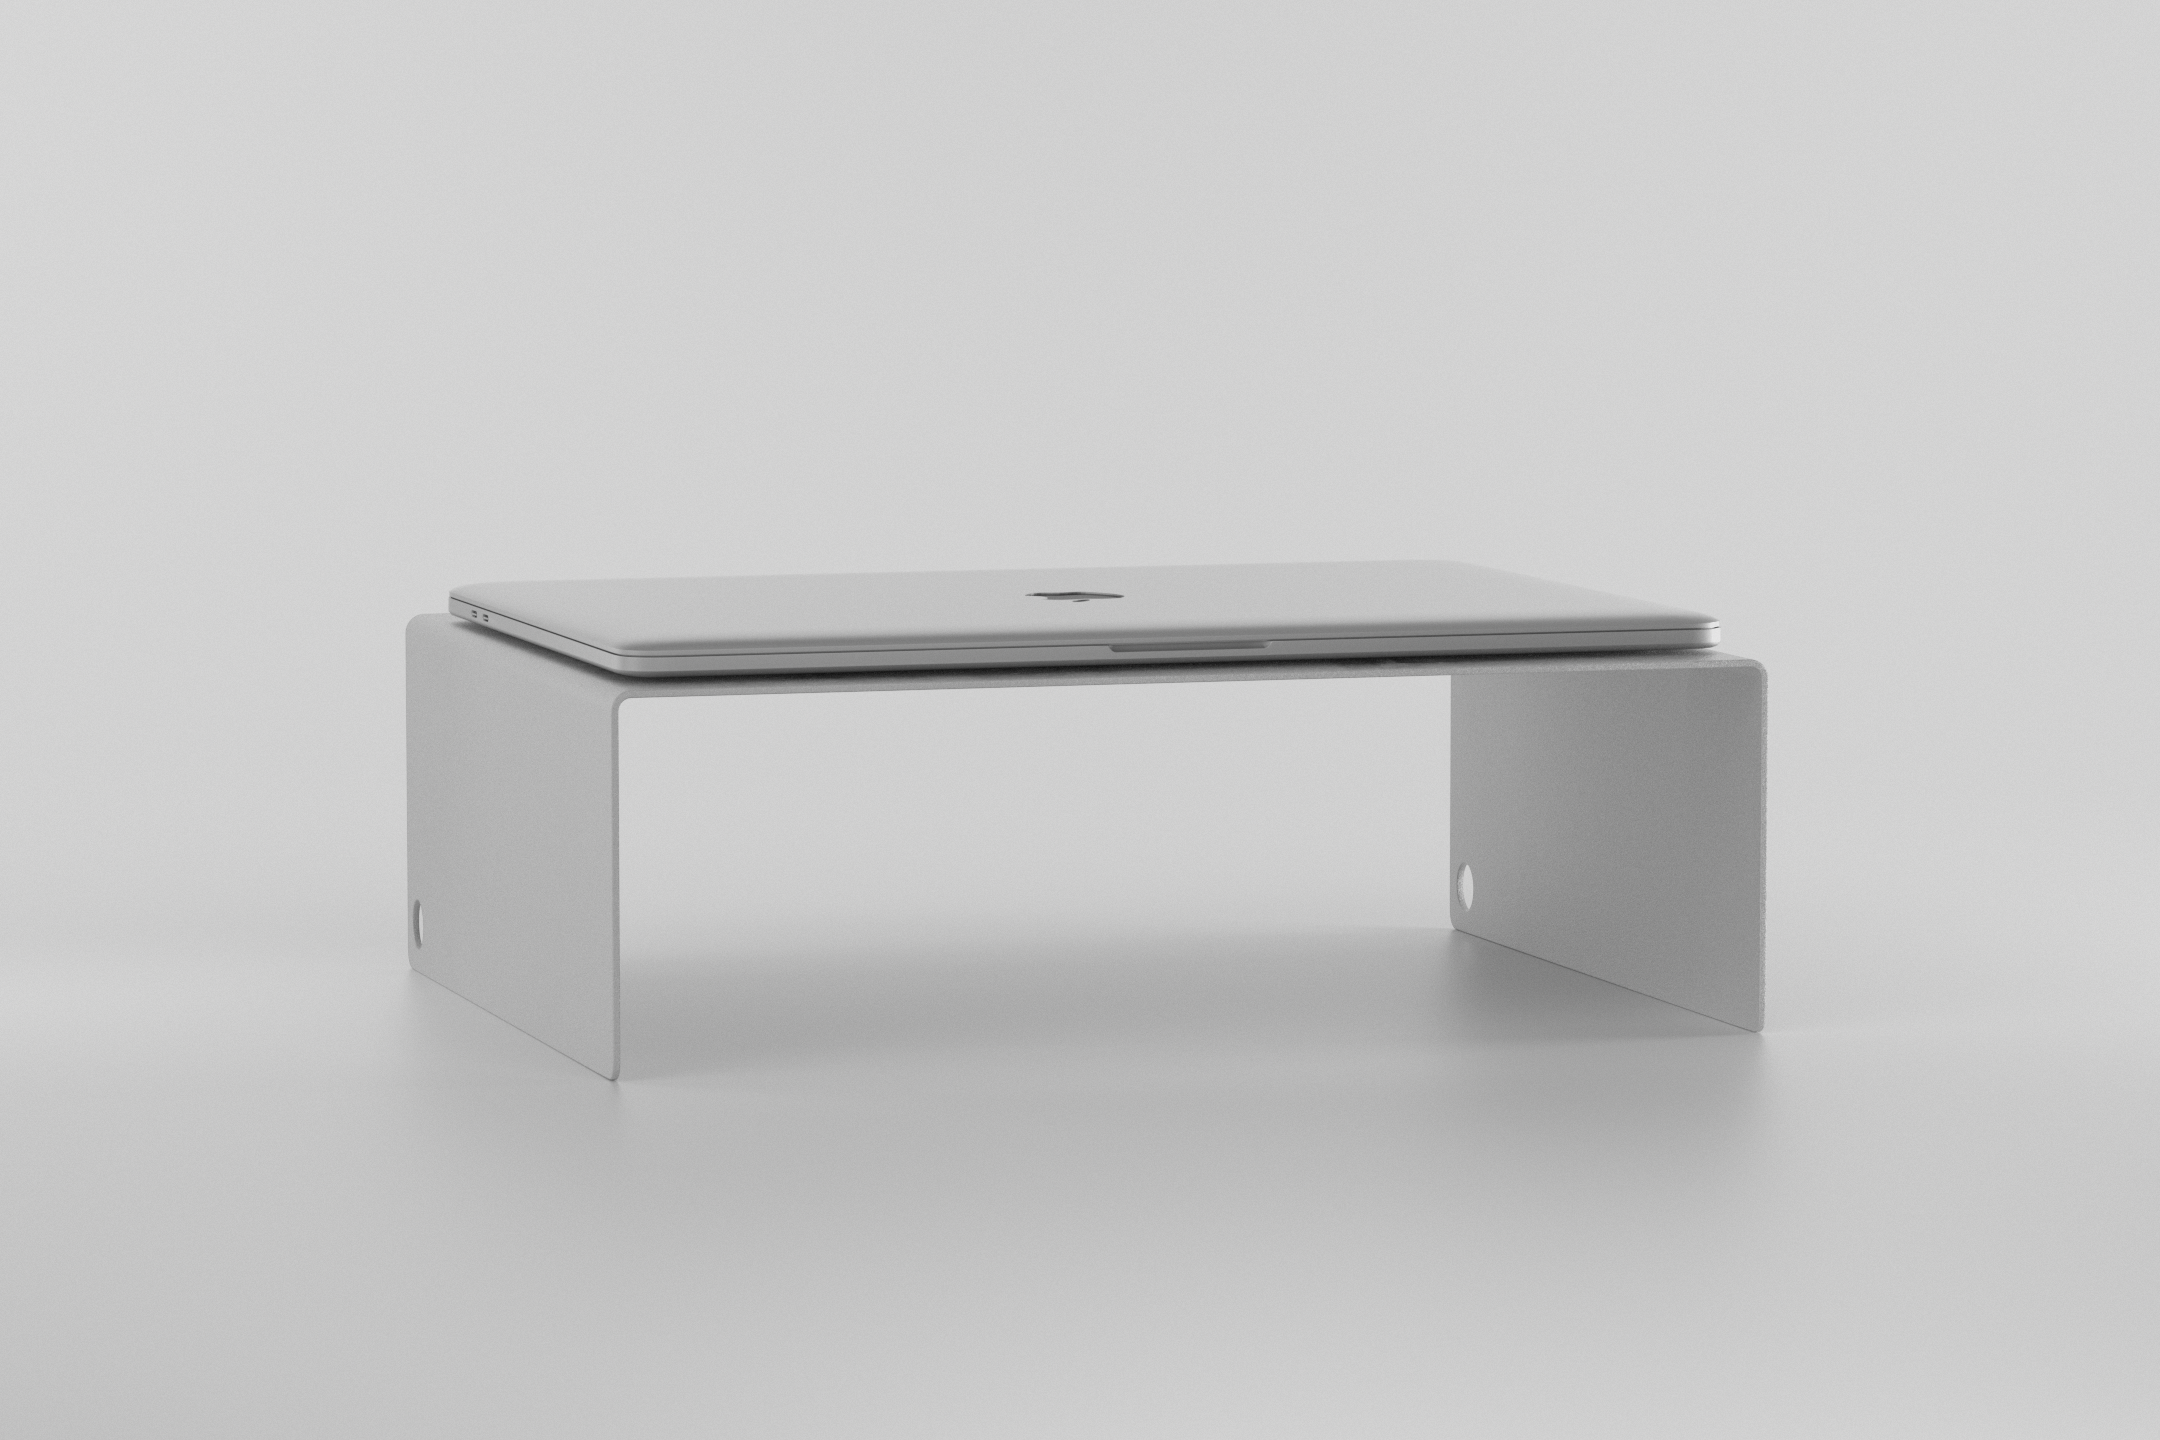 The Laptop Stand - light grey with laptop on it